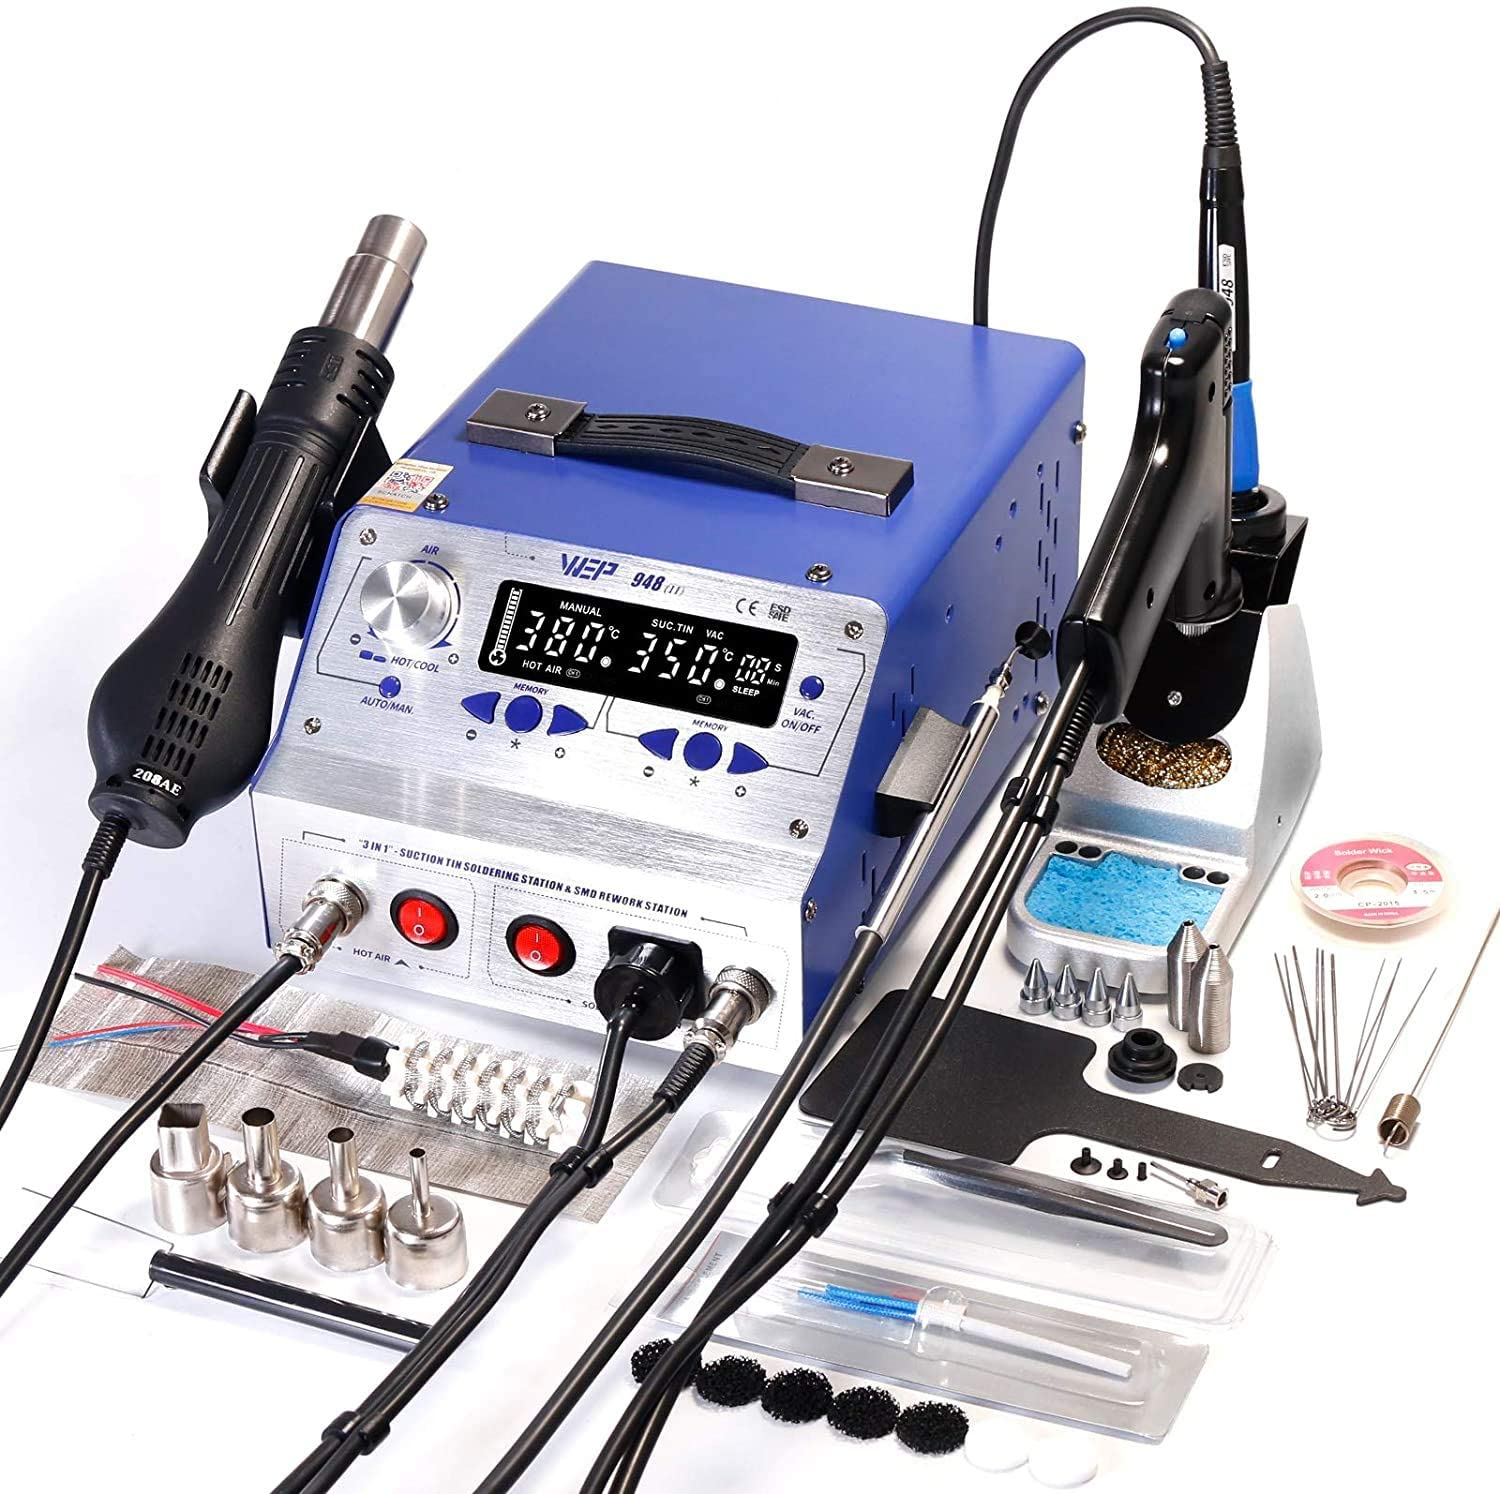 WEP-II 4 in 1 Hot Air Gun Rework & Soldering Iron Station & Desoldering Station & Vacuum Suction Pen (used like new)